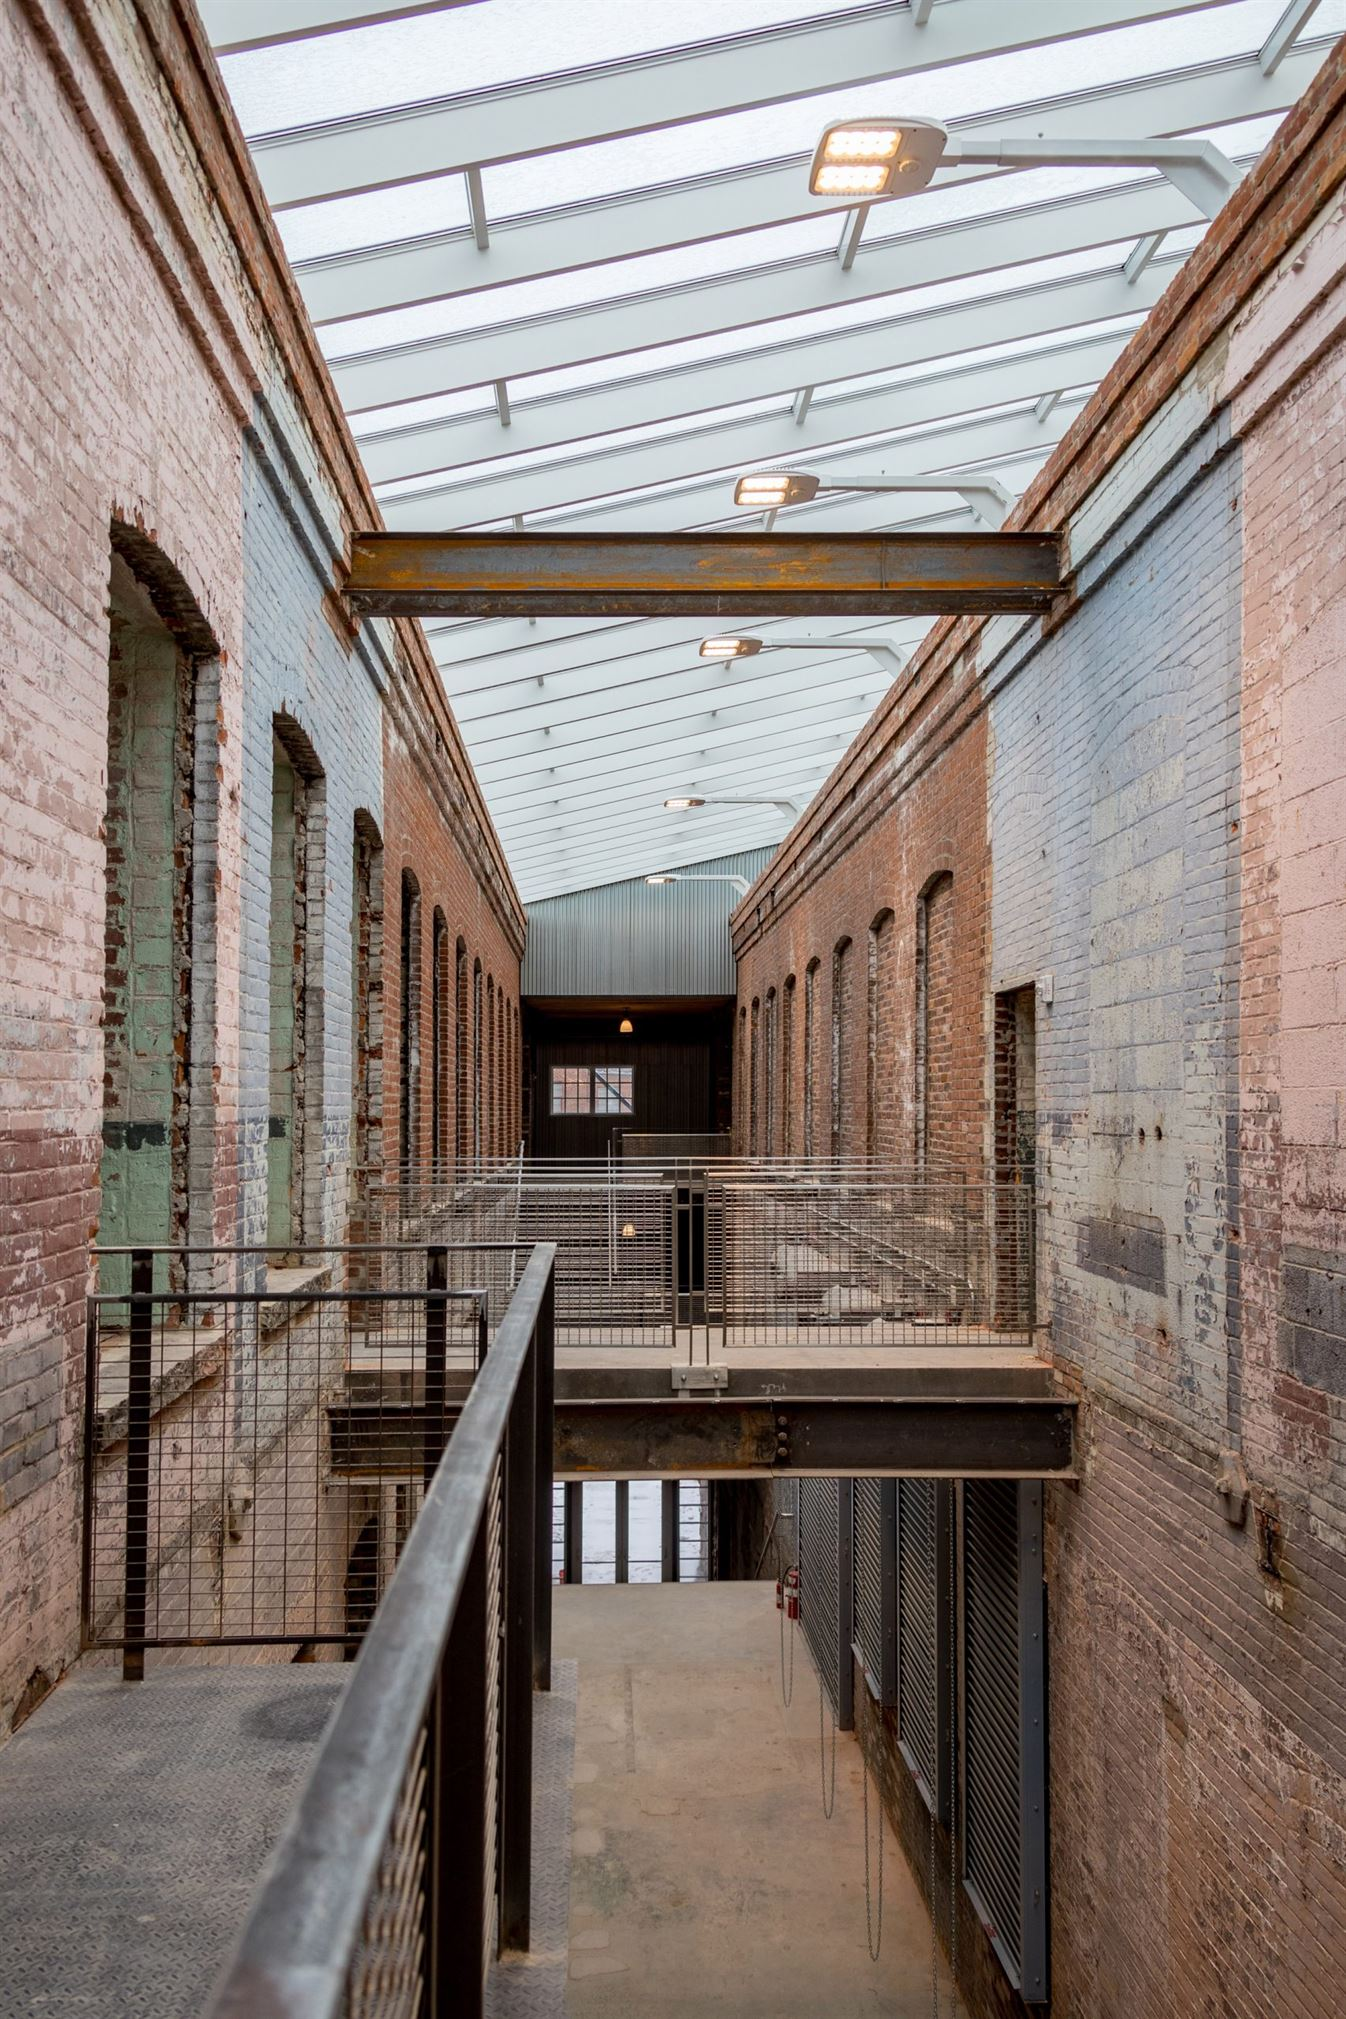 bruner-cott-mass-moca-massachusetts-museum-of-contemporary-art-museum-textile-8888factory-berkshires-expansion-renovation_dezeen_6-1704